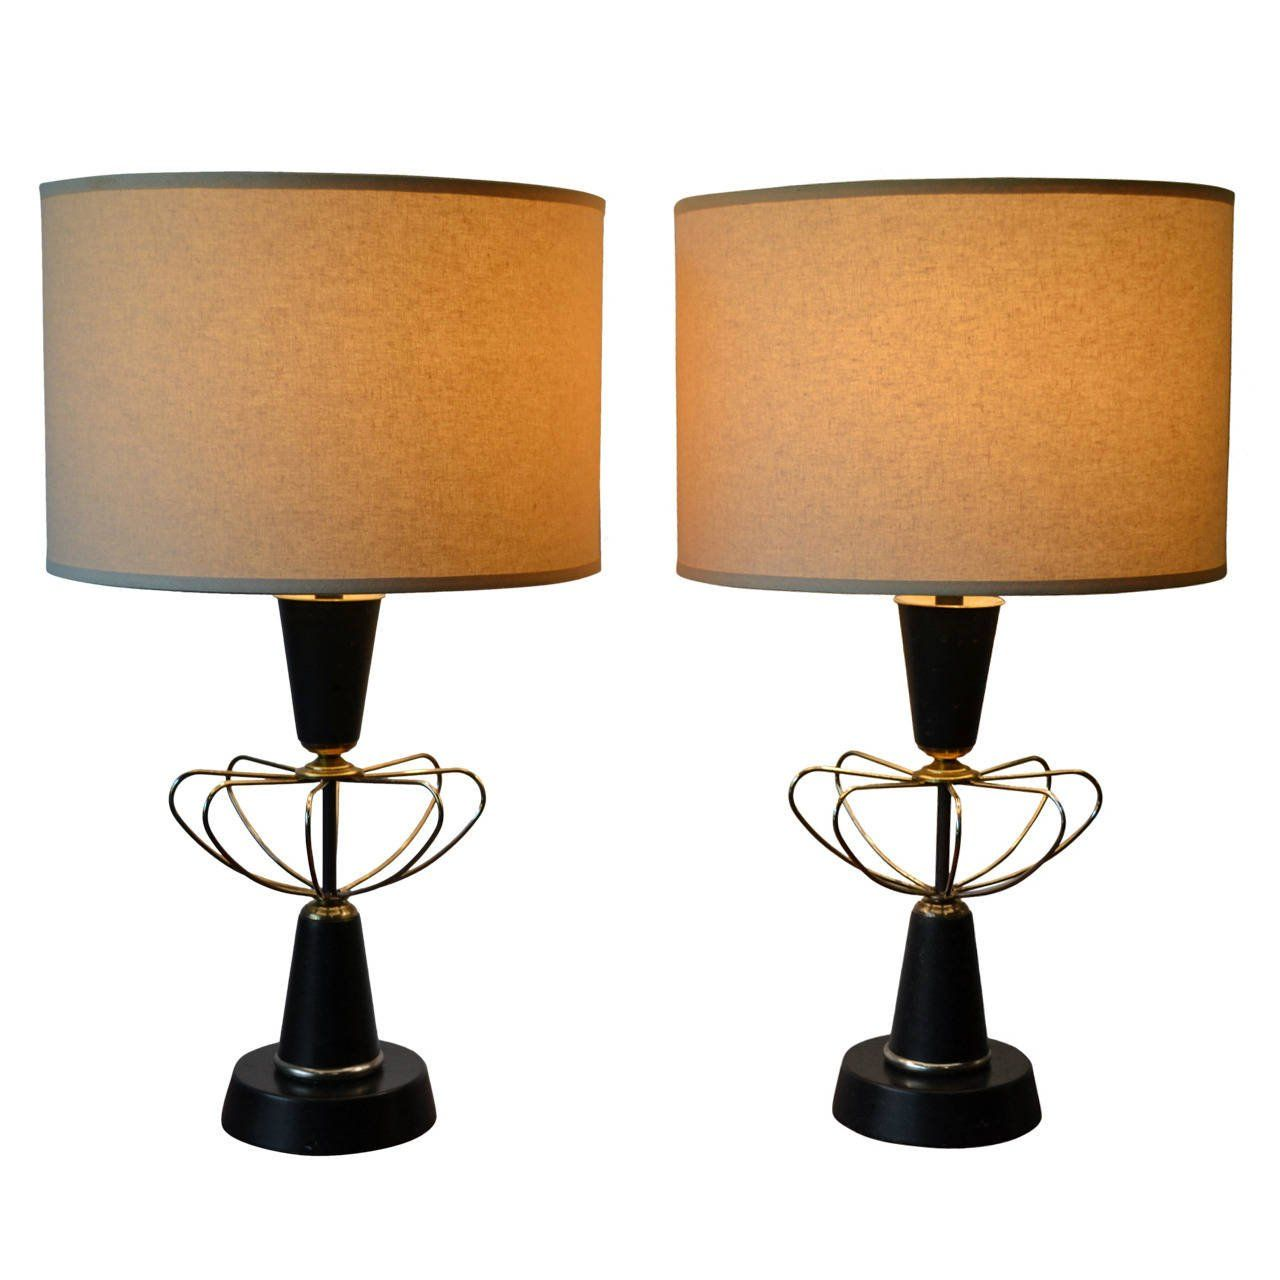 Atomic Age Table L&s in the Manner of Paul McCobb at 1stdibs  sc 1 st  Pinterest & Atomic Age Table Lamps in the Manner of Paul McCobb at 1stdibs ...